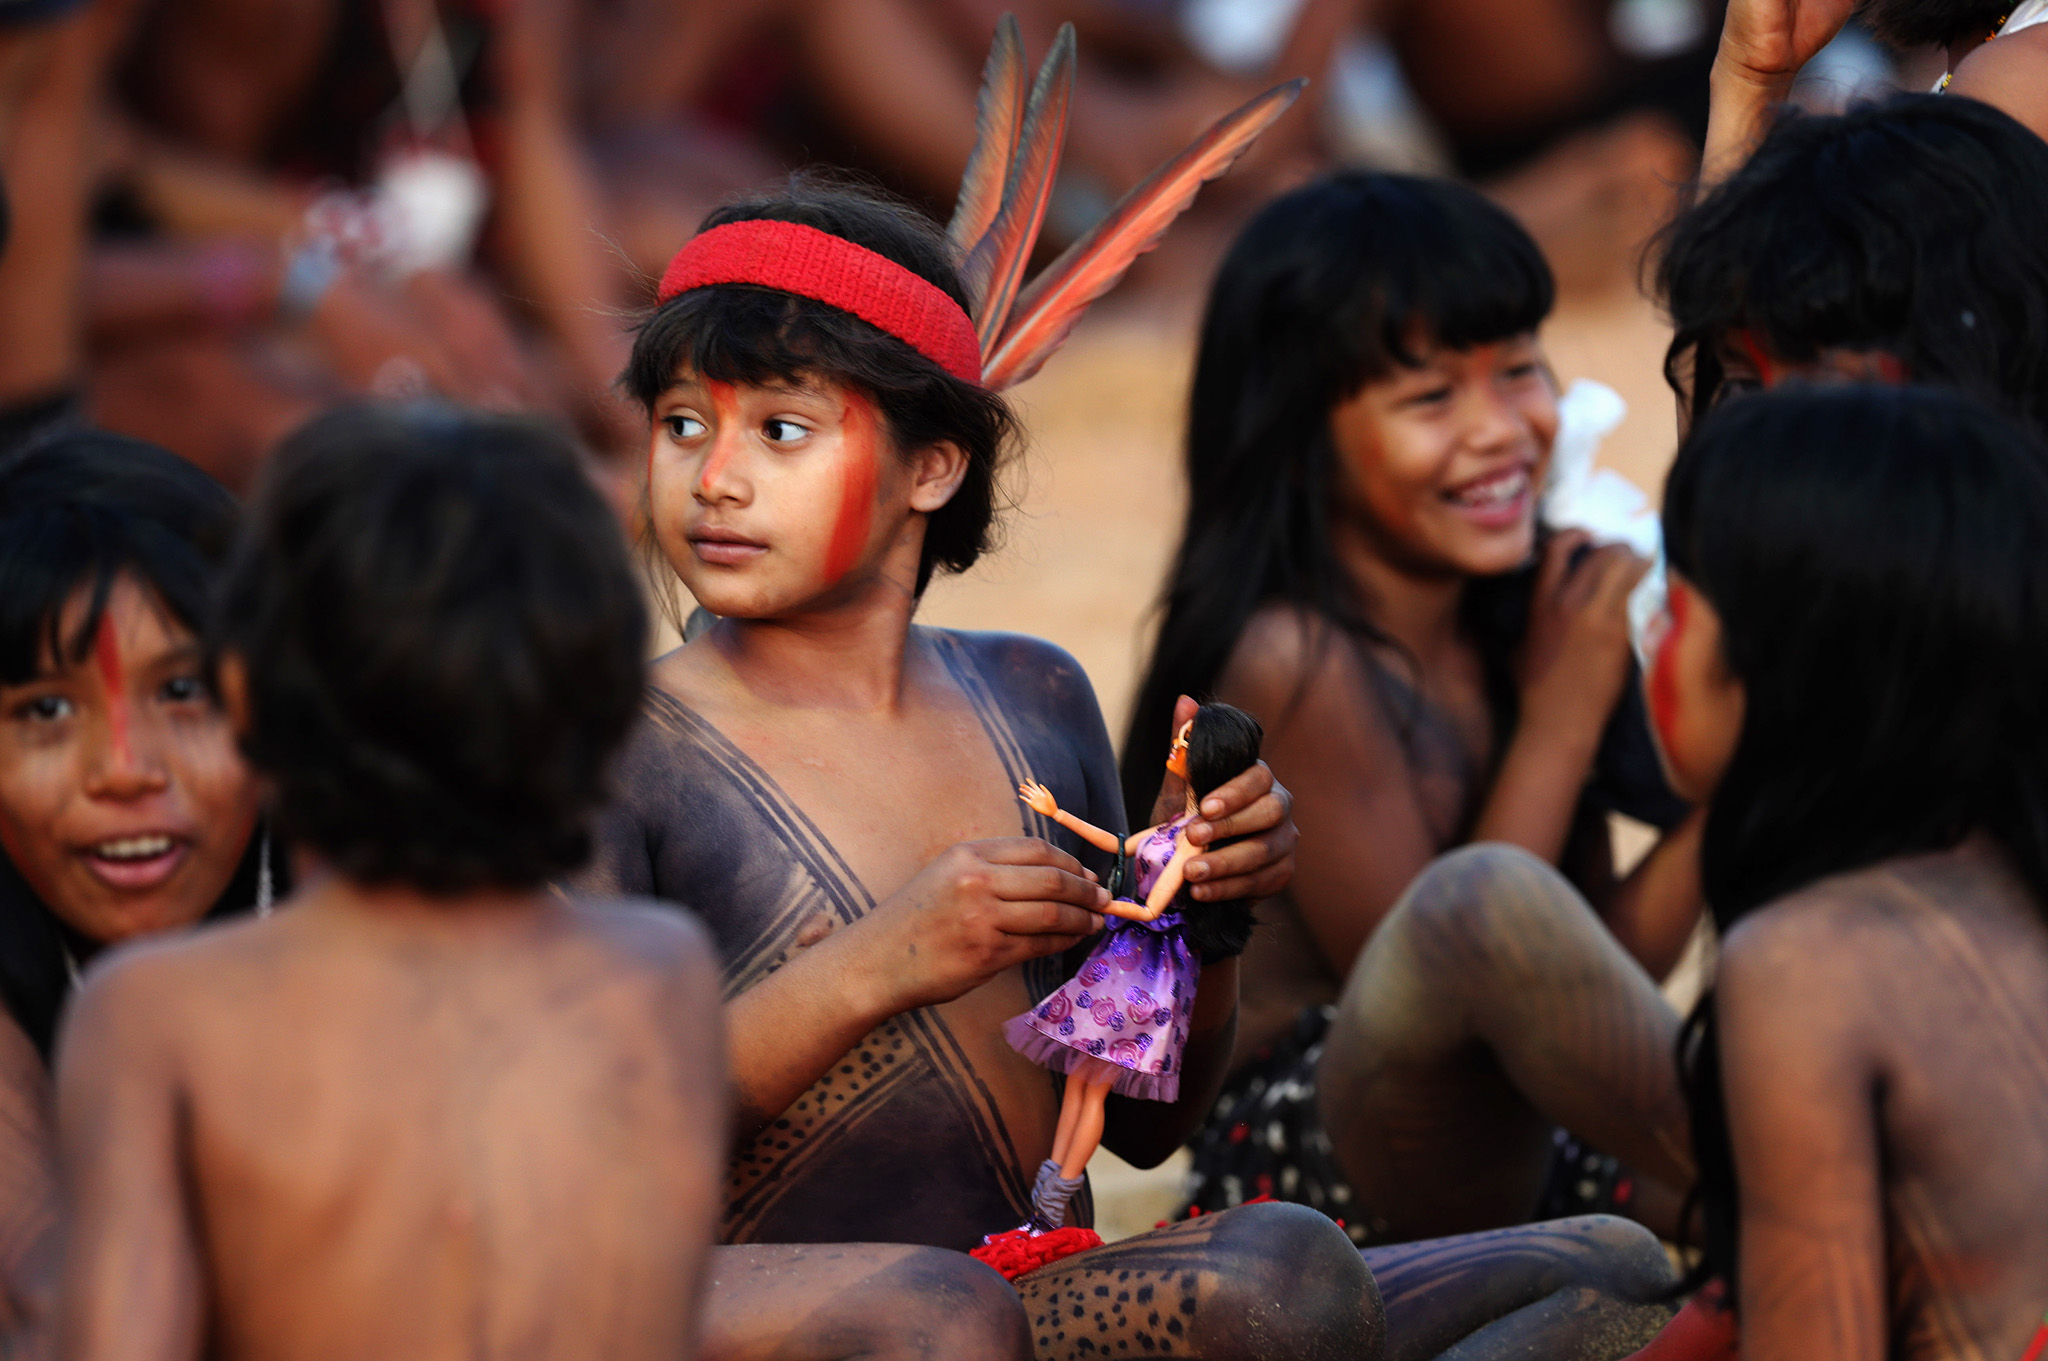 Gaviao children play with a Barbie doll during the World Indigenous Games, in Palmas, Brazil, Monday, Oct. 26, 2015.  The Games have been hampered by technical hick-ups and allegations of mismanagement and poor organization. On opening day, construction workers were still busily buzzing away on the installations, and some participants have complained of poor conditions in the indigenous lodgings, which the press was forbidden from visiting. (AP Photo/Eraldo Peres)